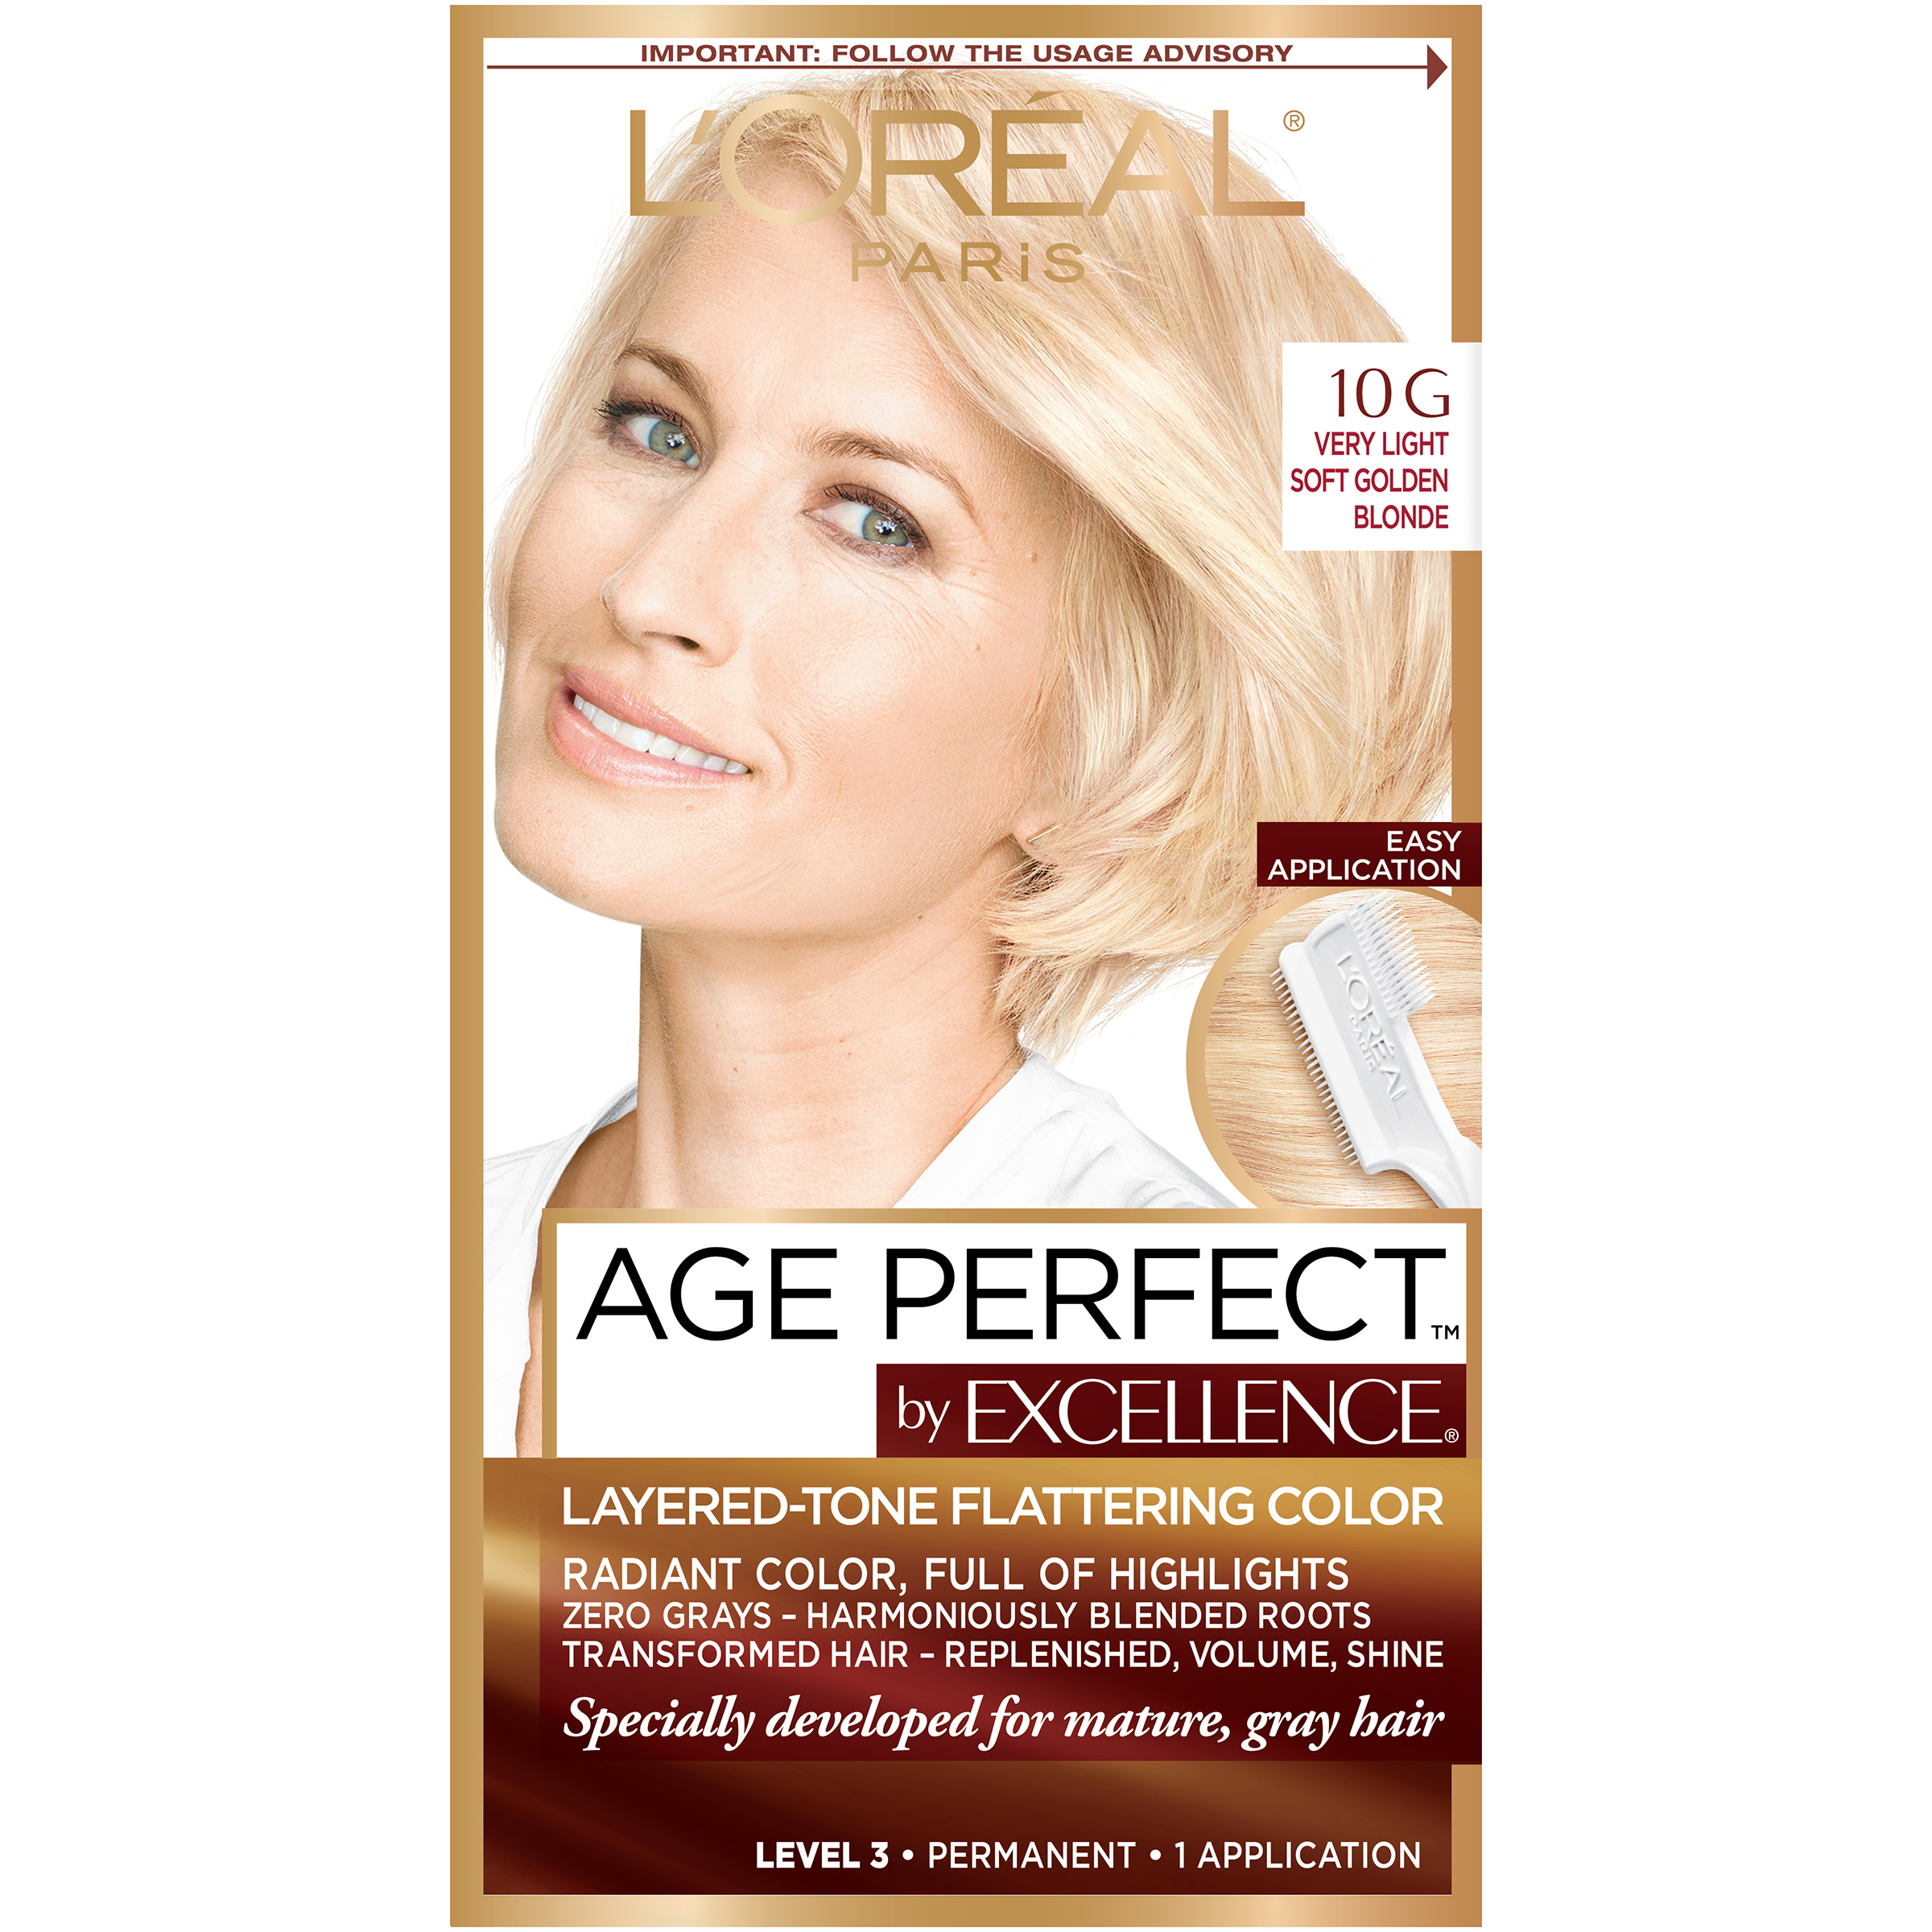 LOreal-Paris-Age-Perfect-Permanent-Hair-Color